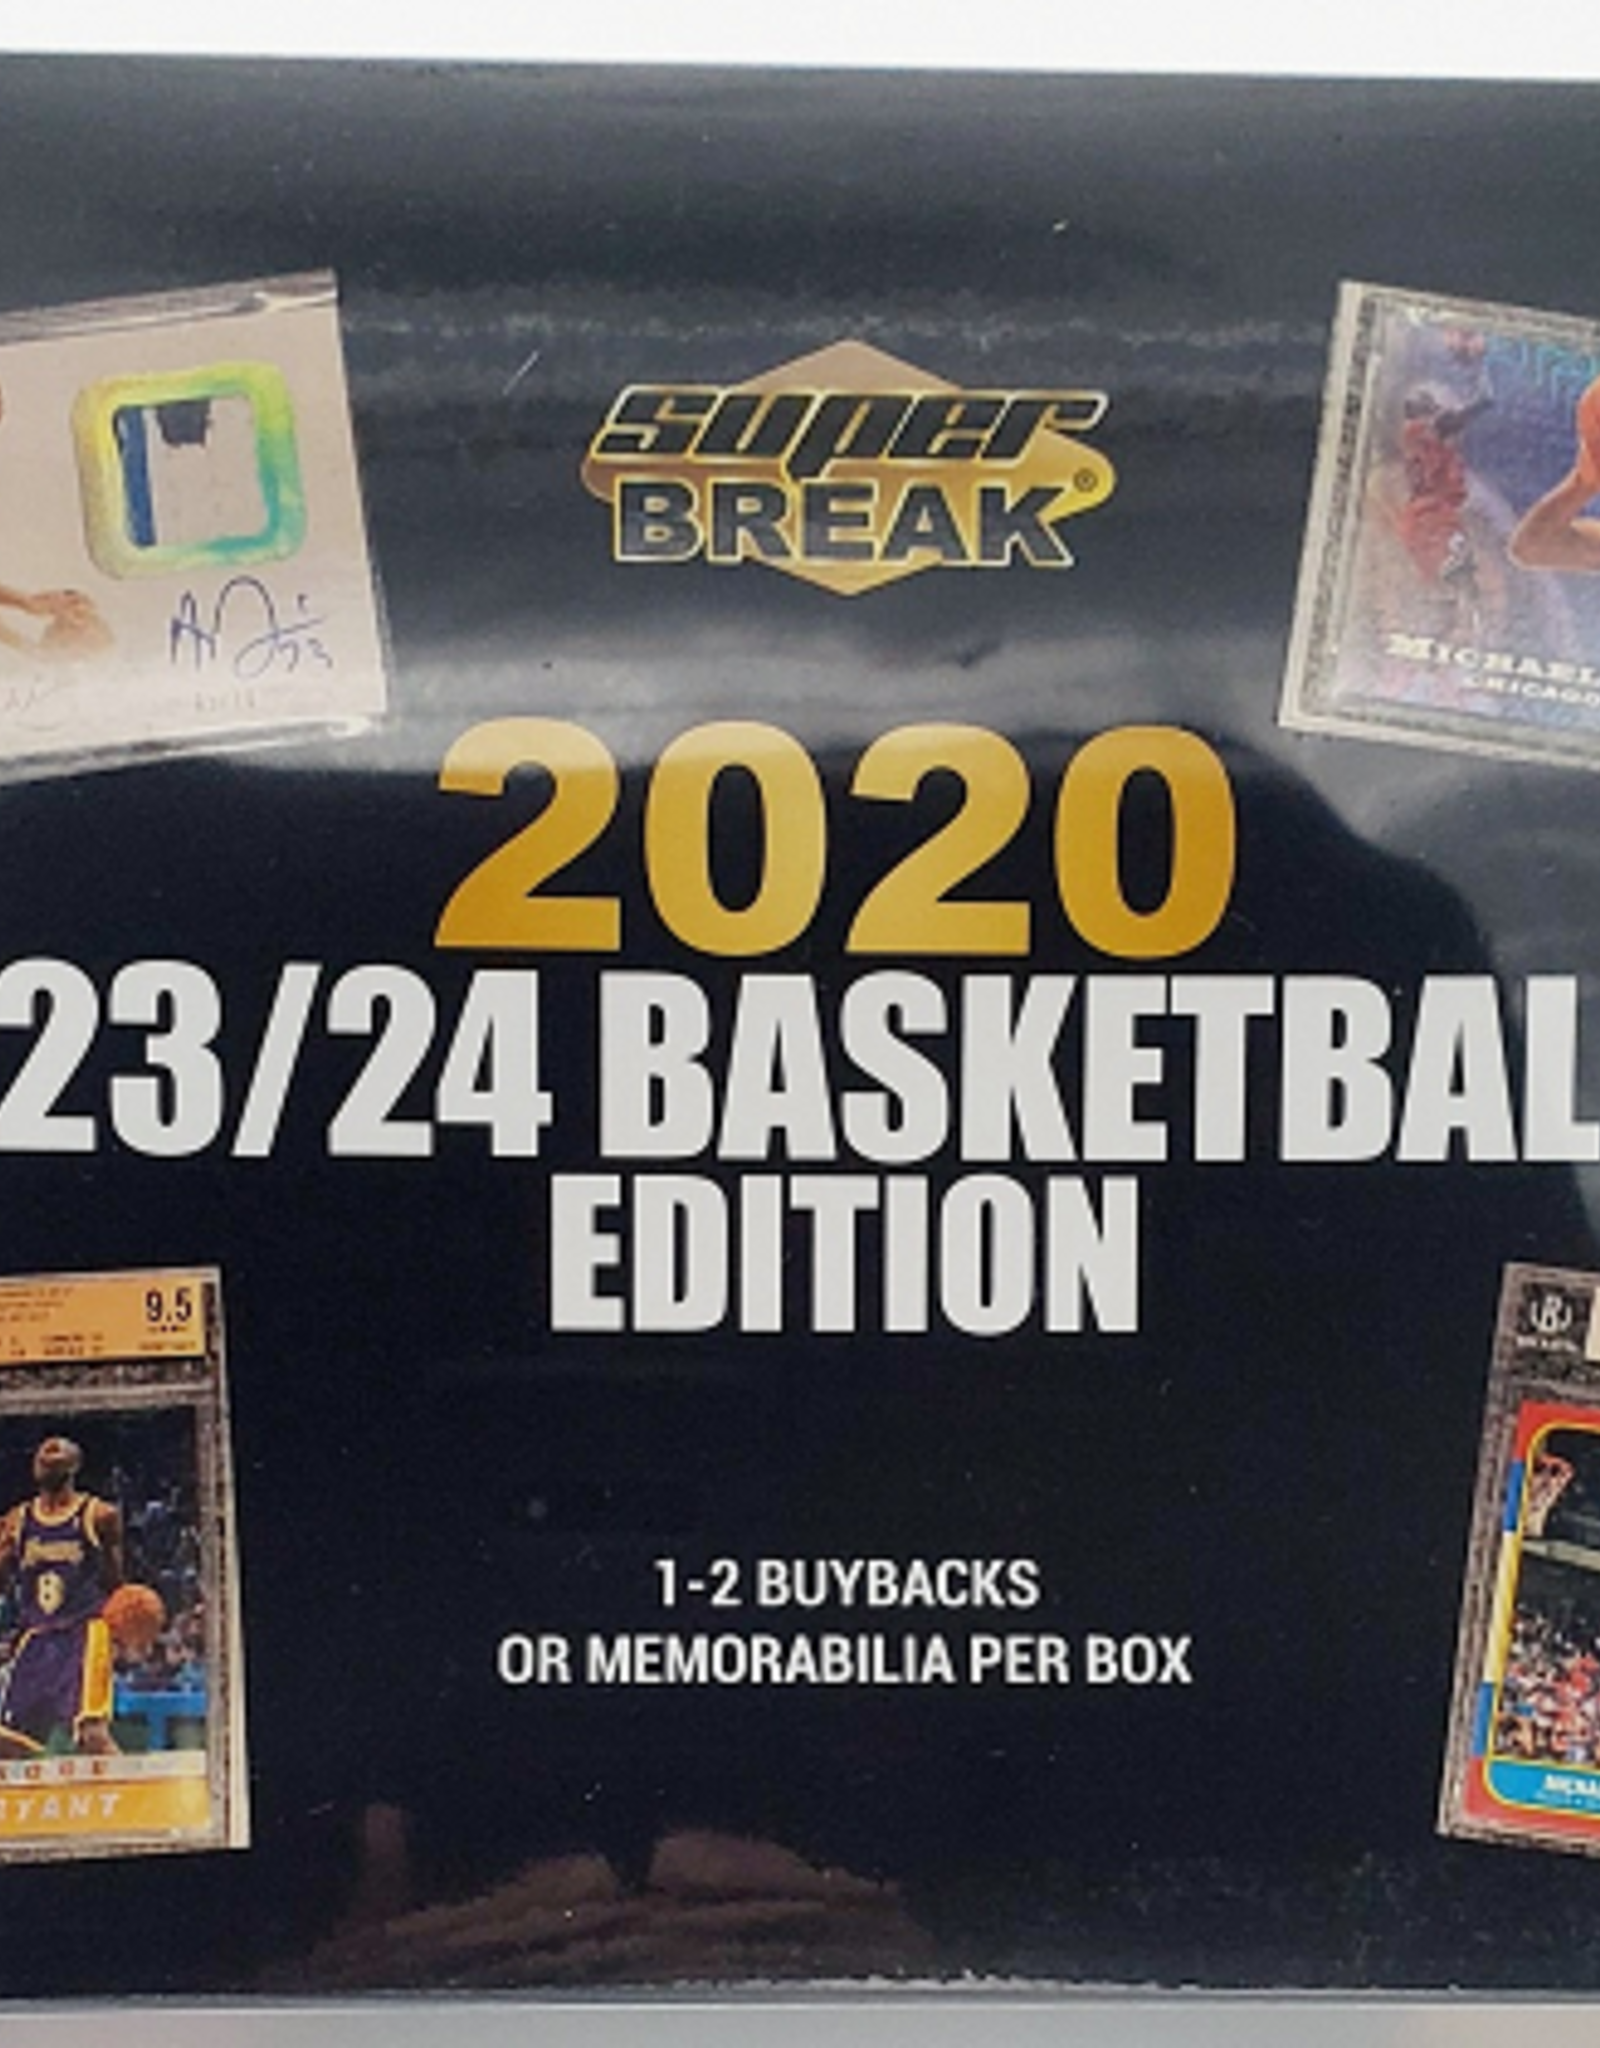 Super Break 2020 Super Break 23/24 Basketball Box